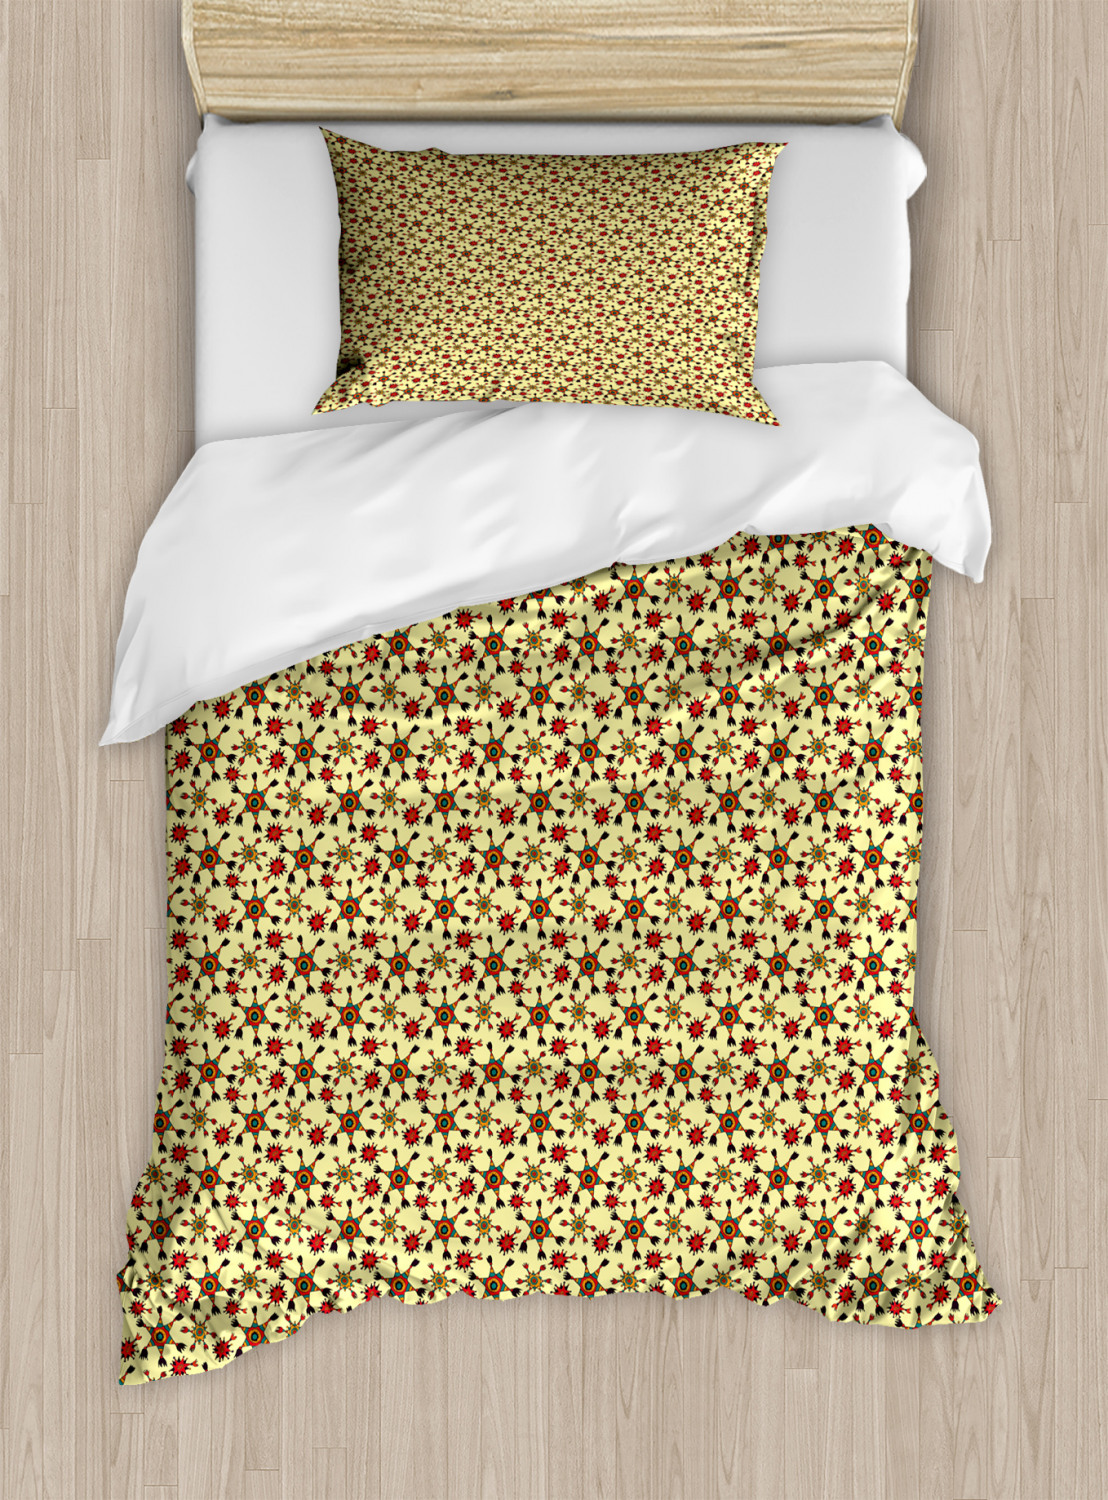 Timeless-Oriental-Duvet-Cover-Set-Twin-Queen-King-Sizes-with-Pillow-Shams thumbnail 13